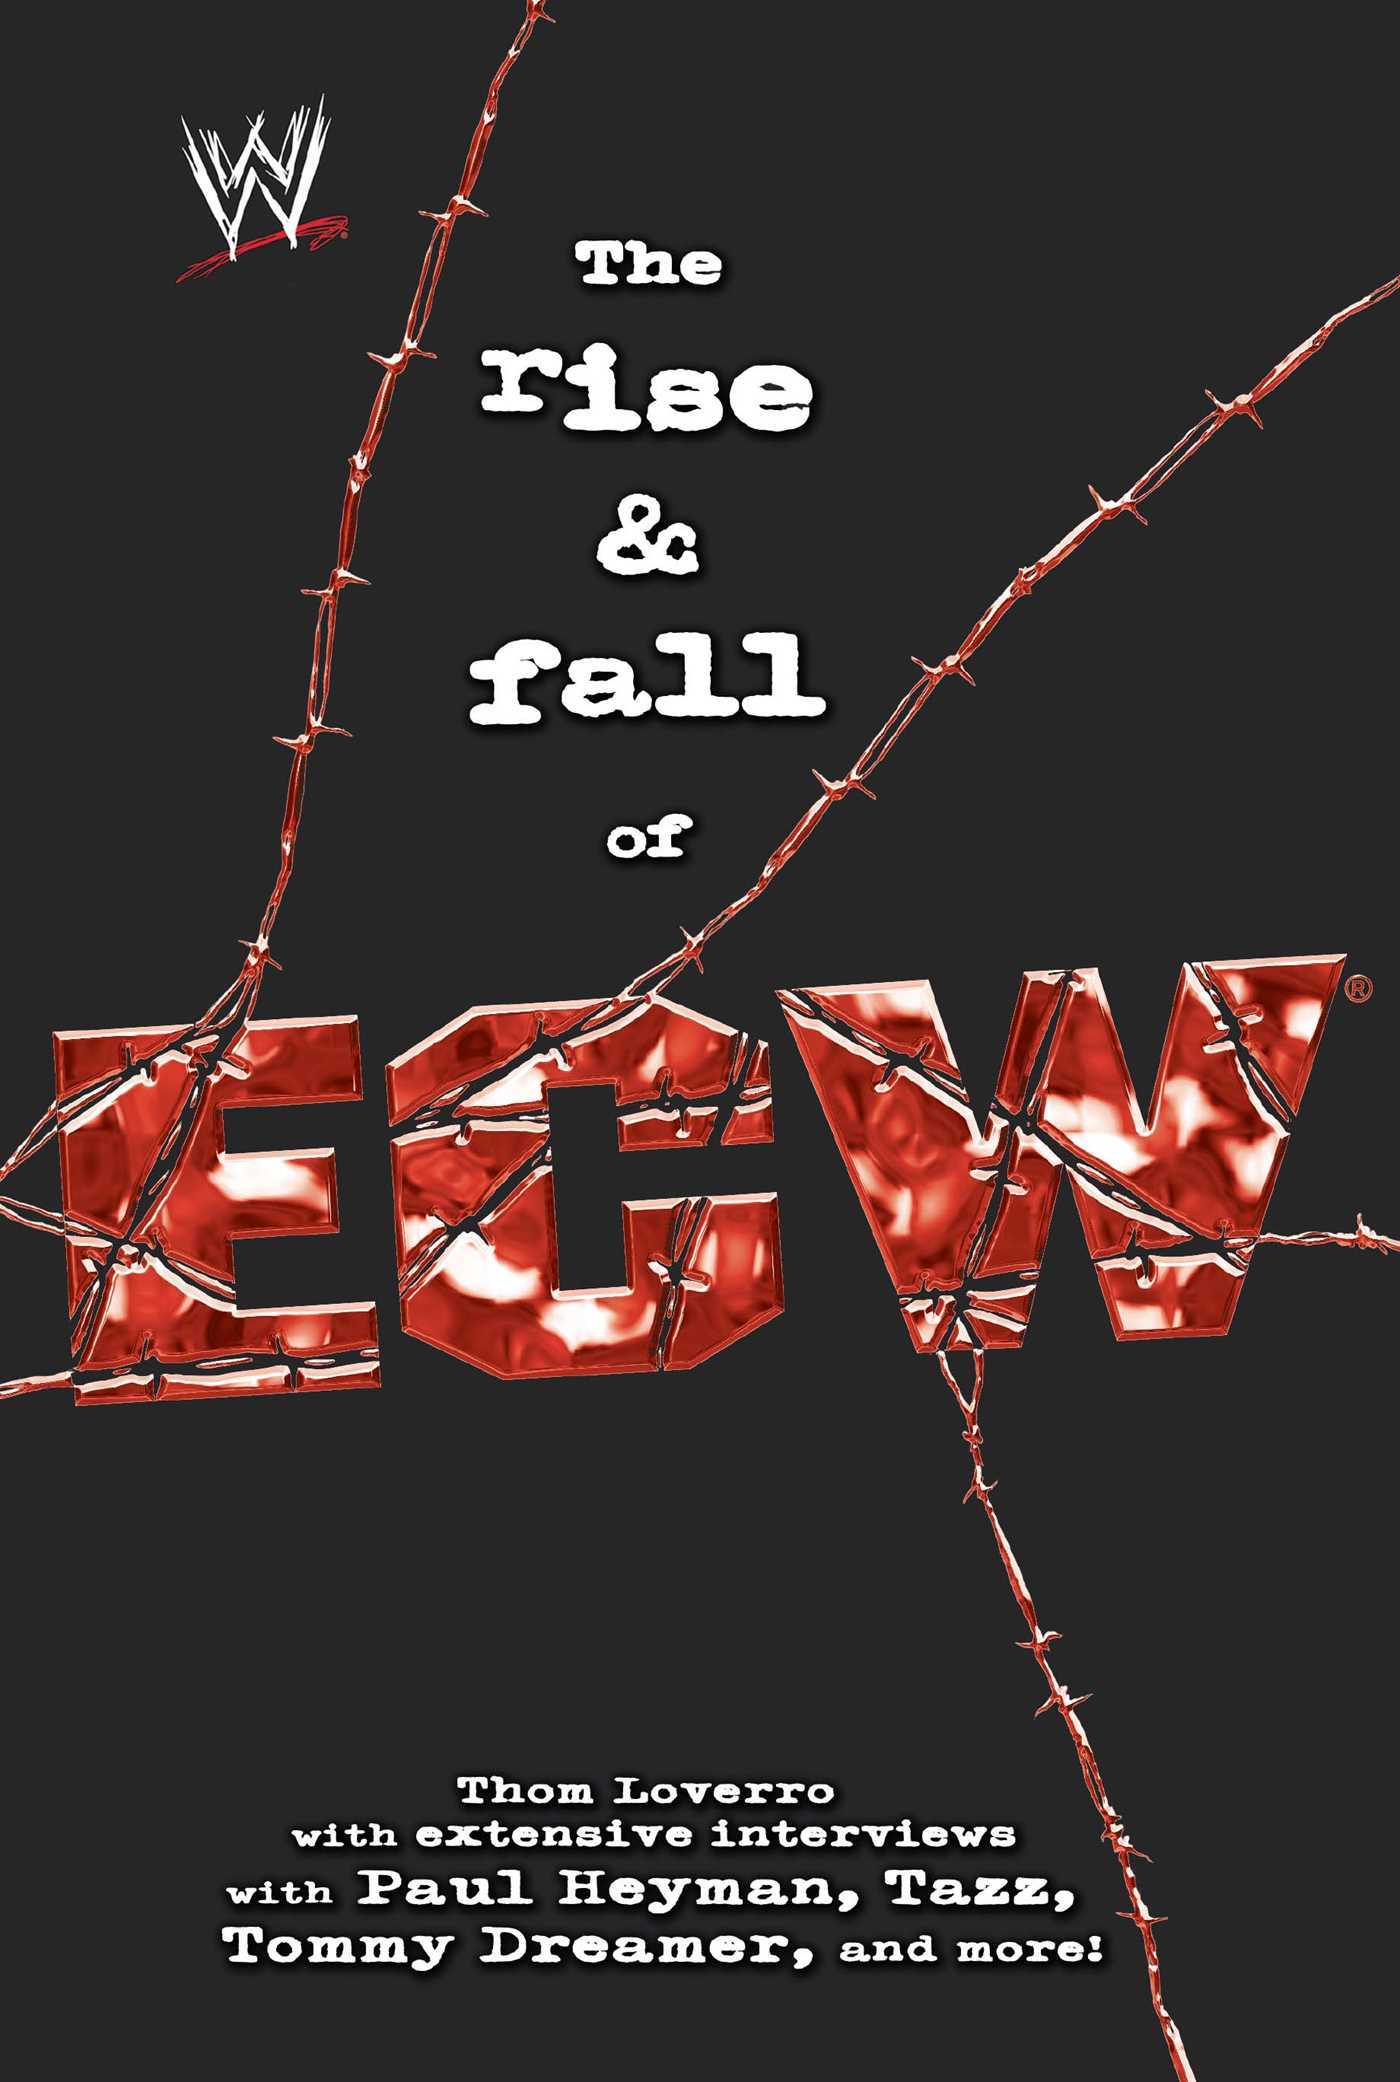 The-rise-fall-of-ecw-9781416513124_hr